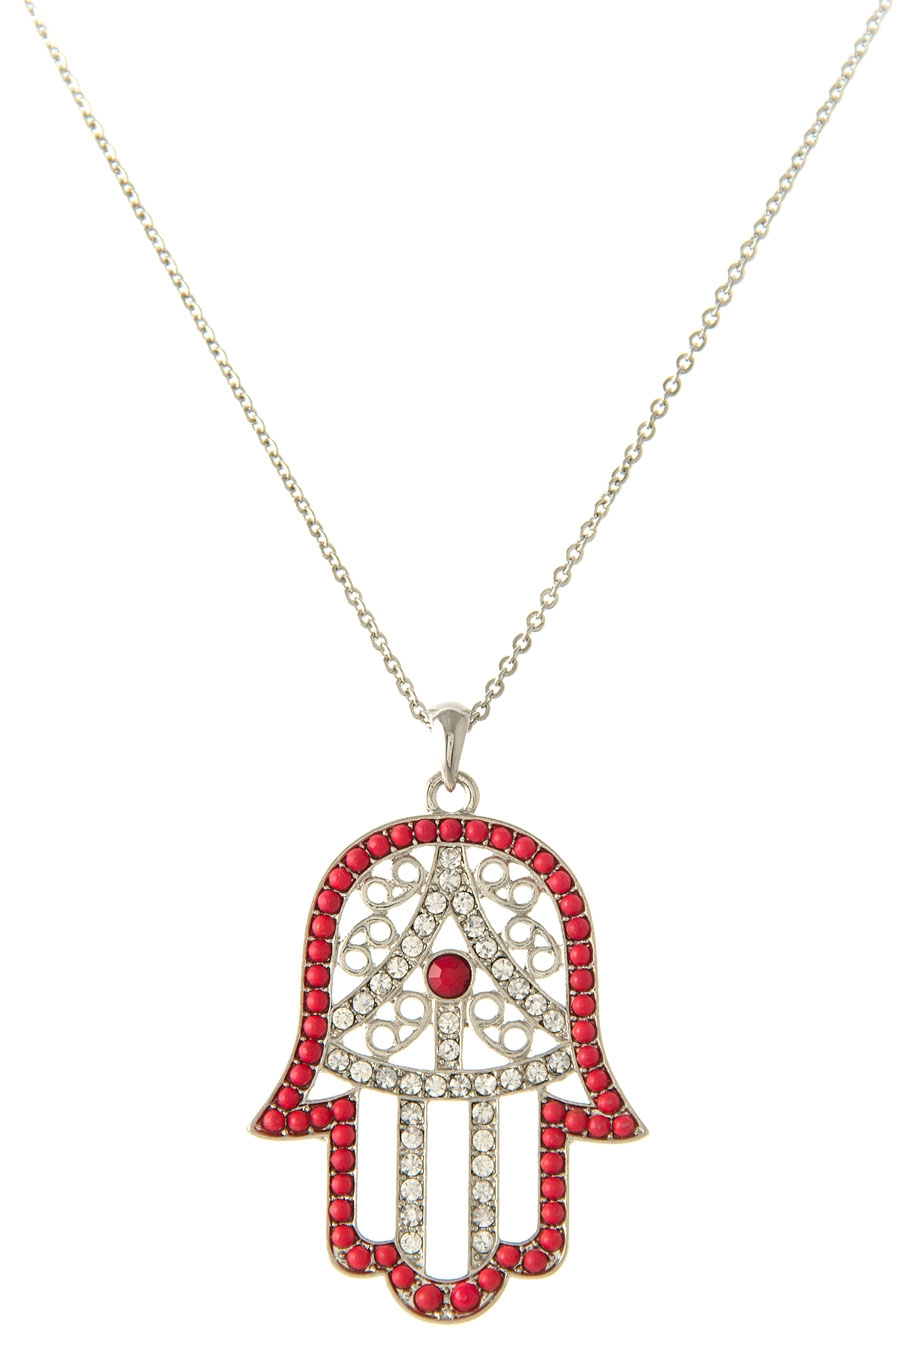 HAMSA RHINESTONE NECKLACE - orangeshine.com